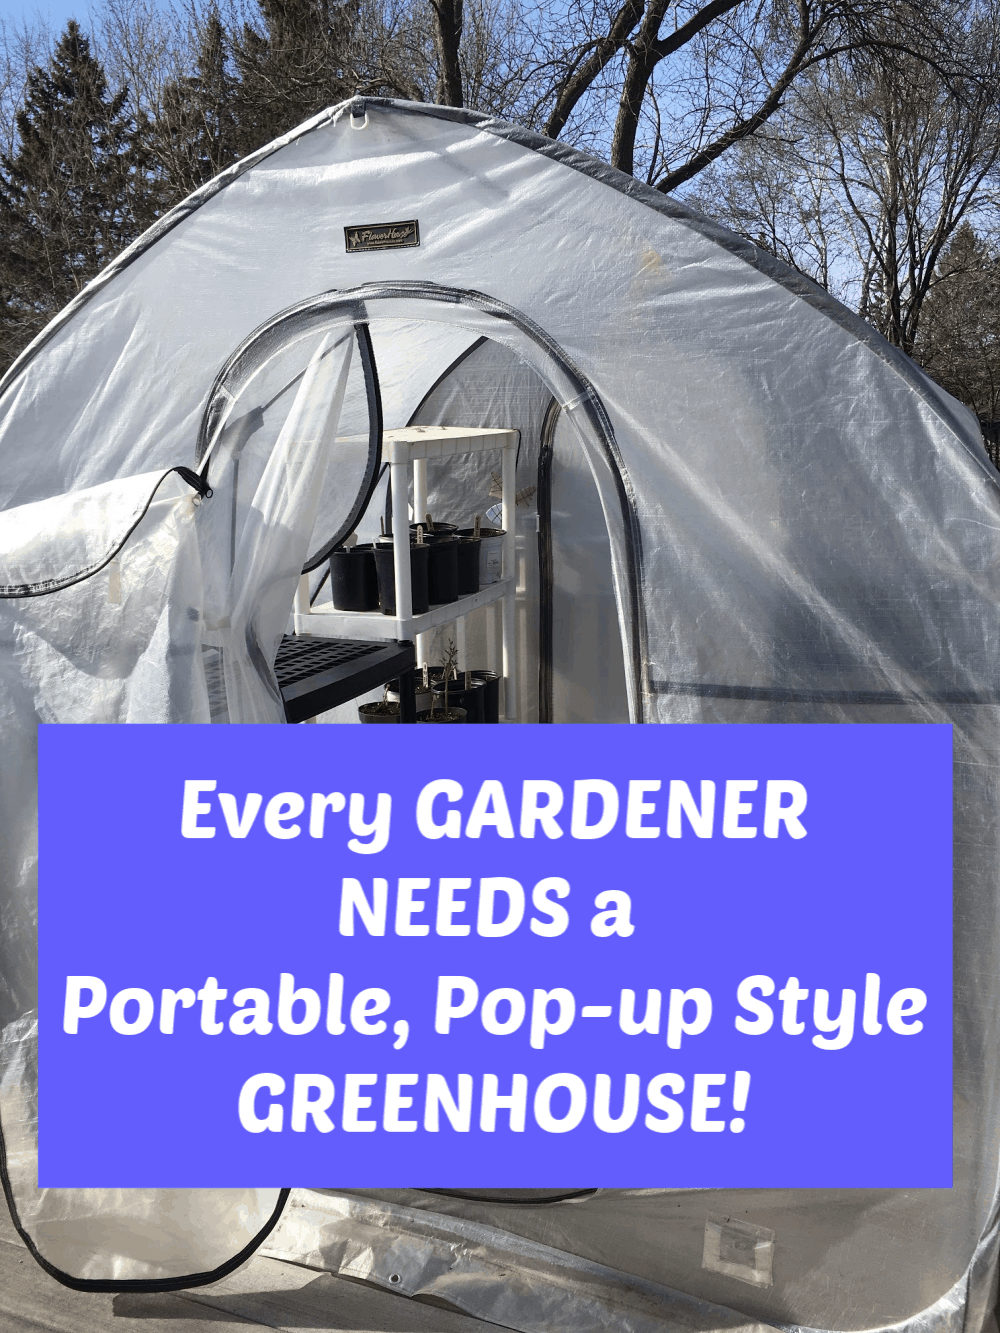 Portable Greenhouse with text overlay Every Gardener needs a portable, pop-up style greenhouse!